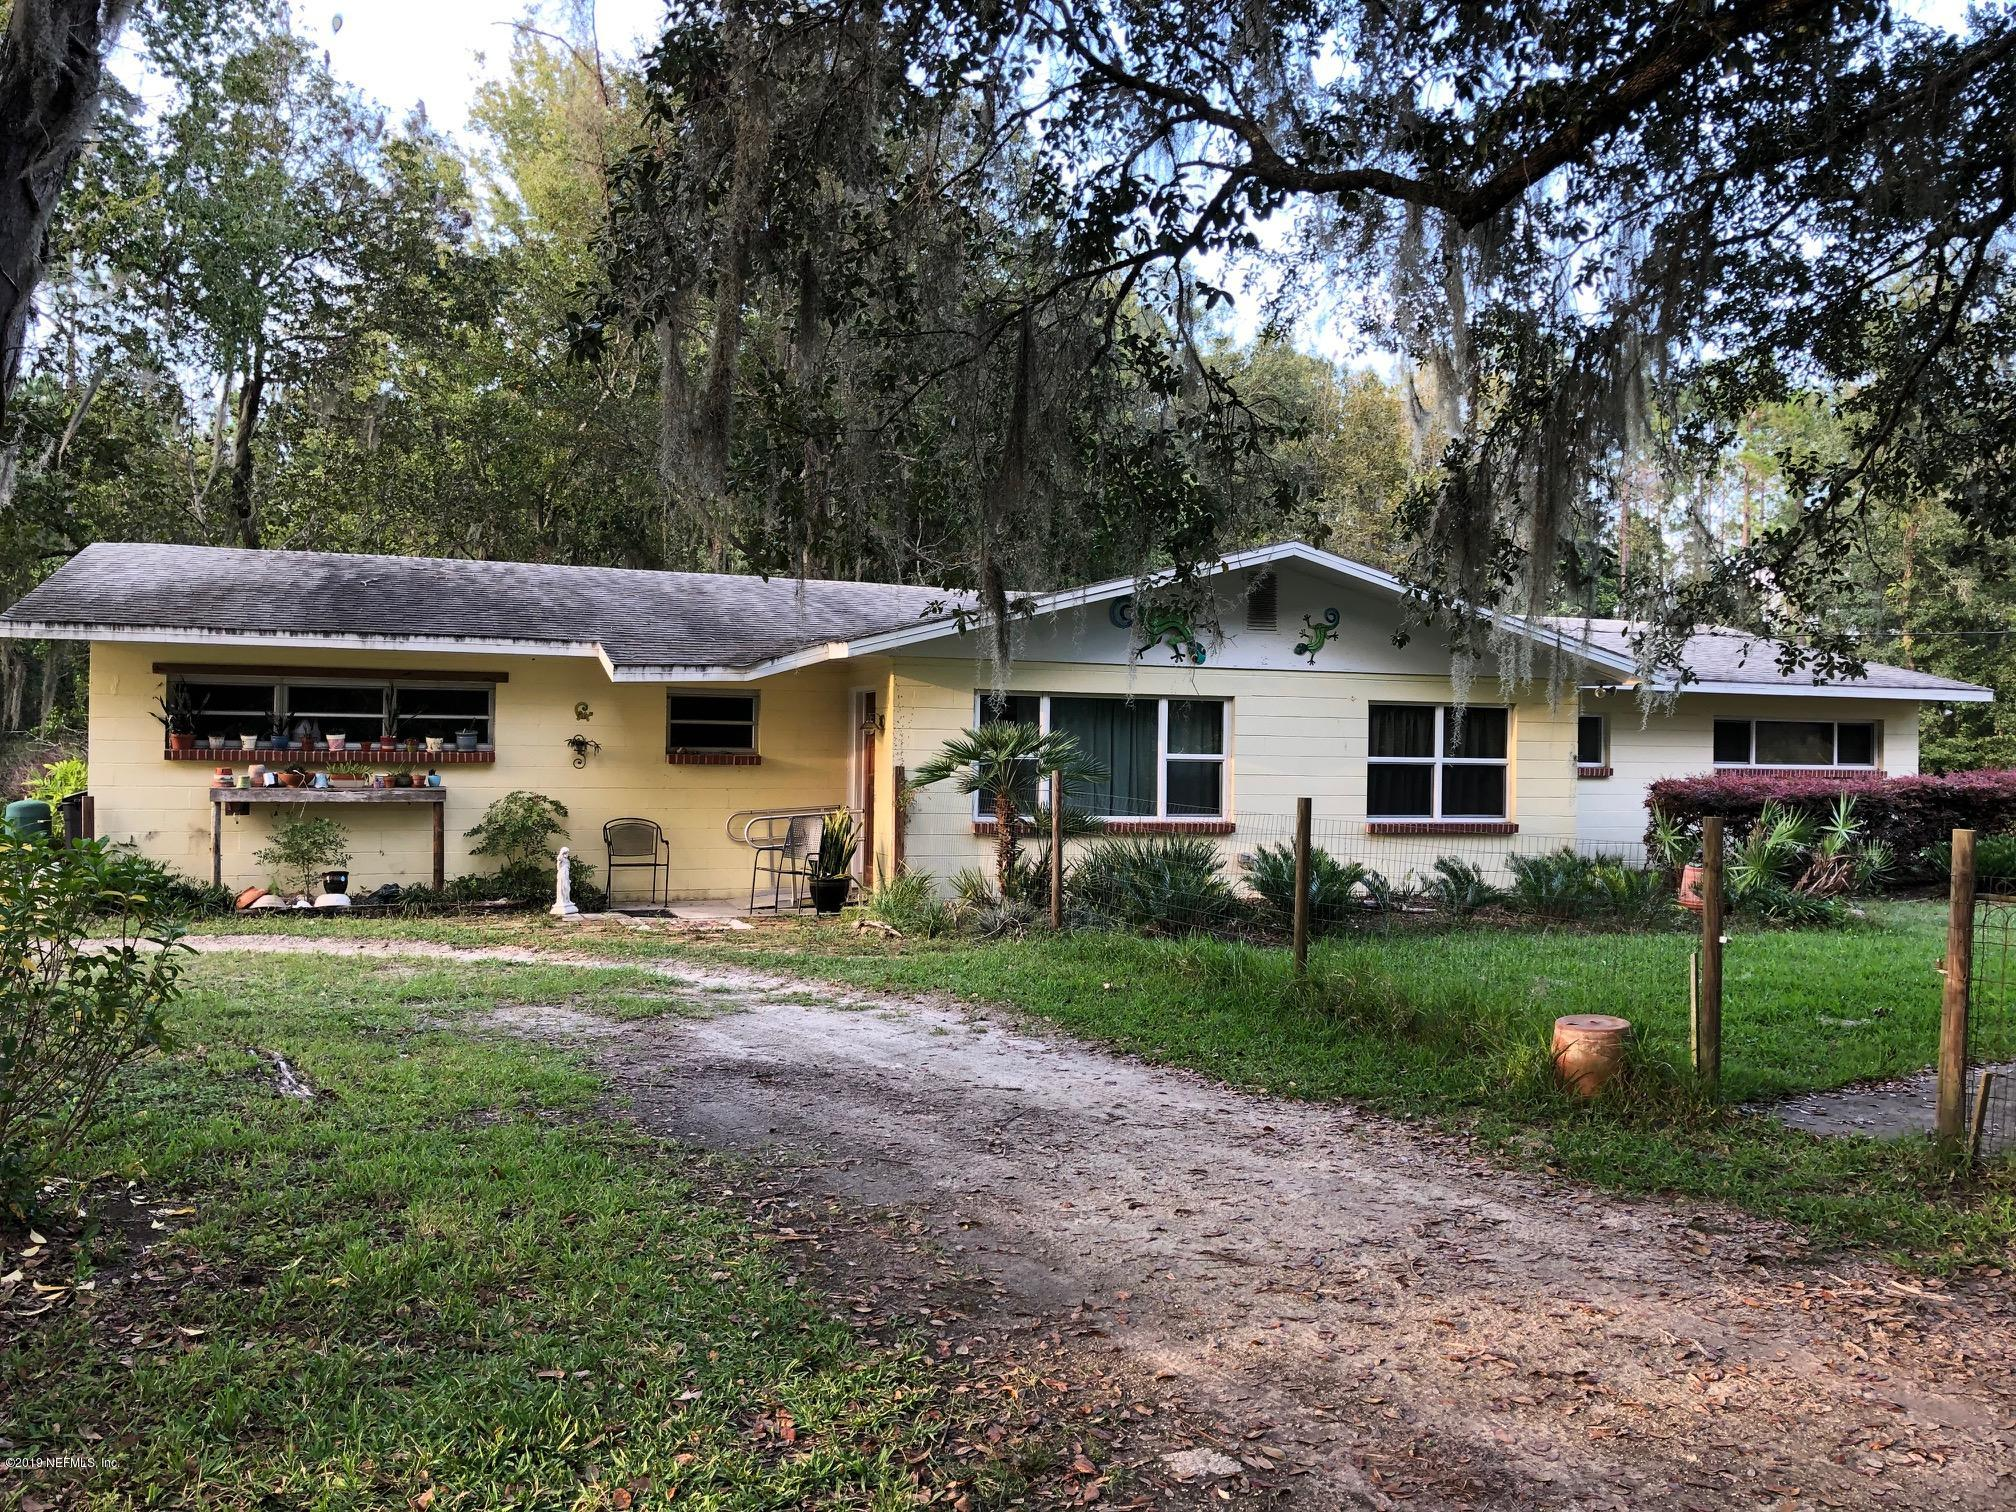 14128 STATE ROAD 26, GAINESVILLE, FLORIDA 32641, 3 Bedrooms Bedrooms, ,3 BathroomsBathrooms,Residential - single family,For sale,STATE ROAD 26,1022836